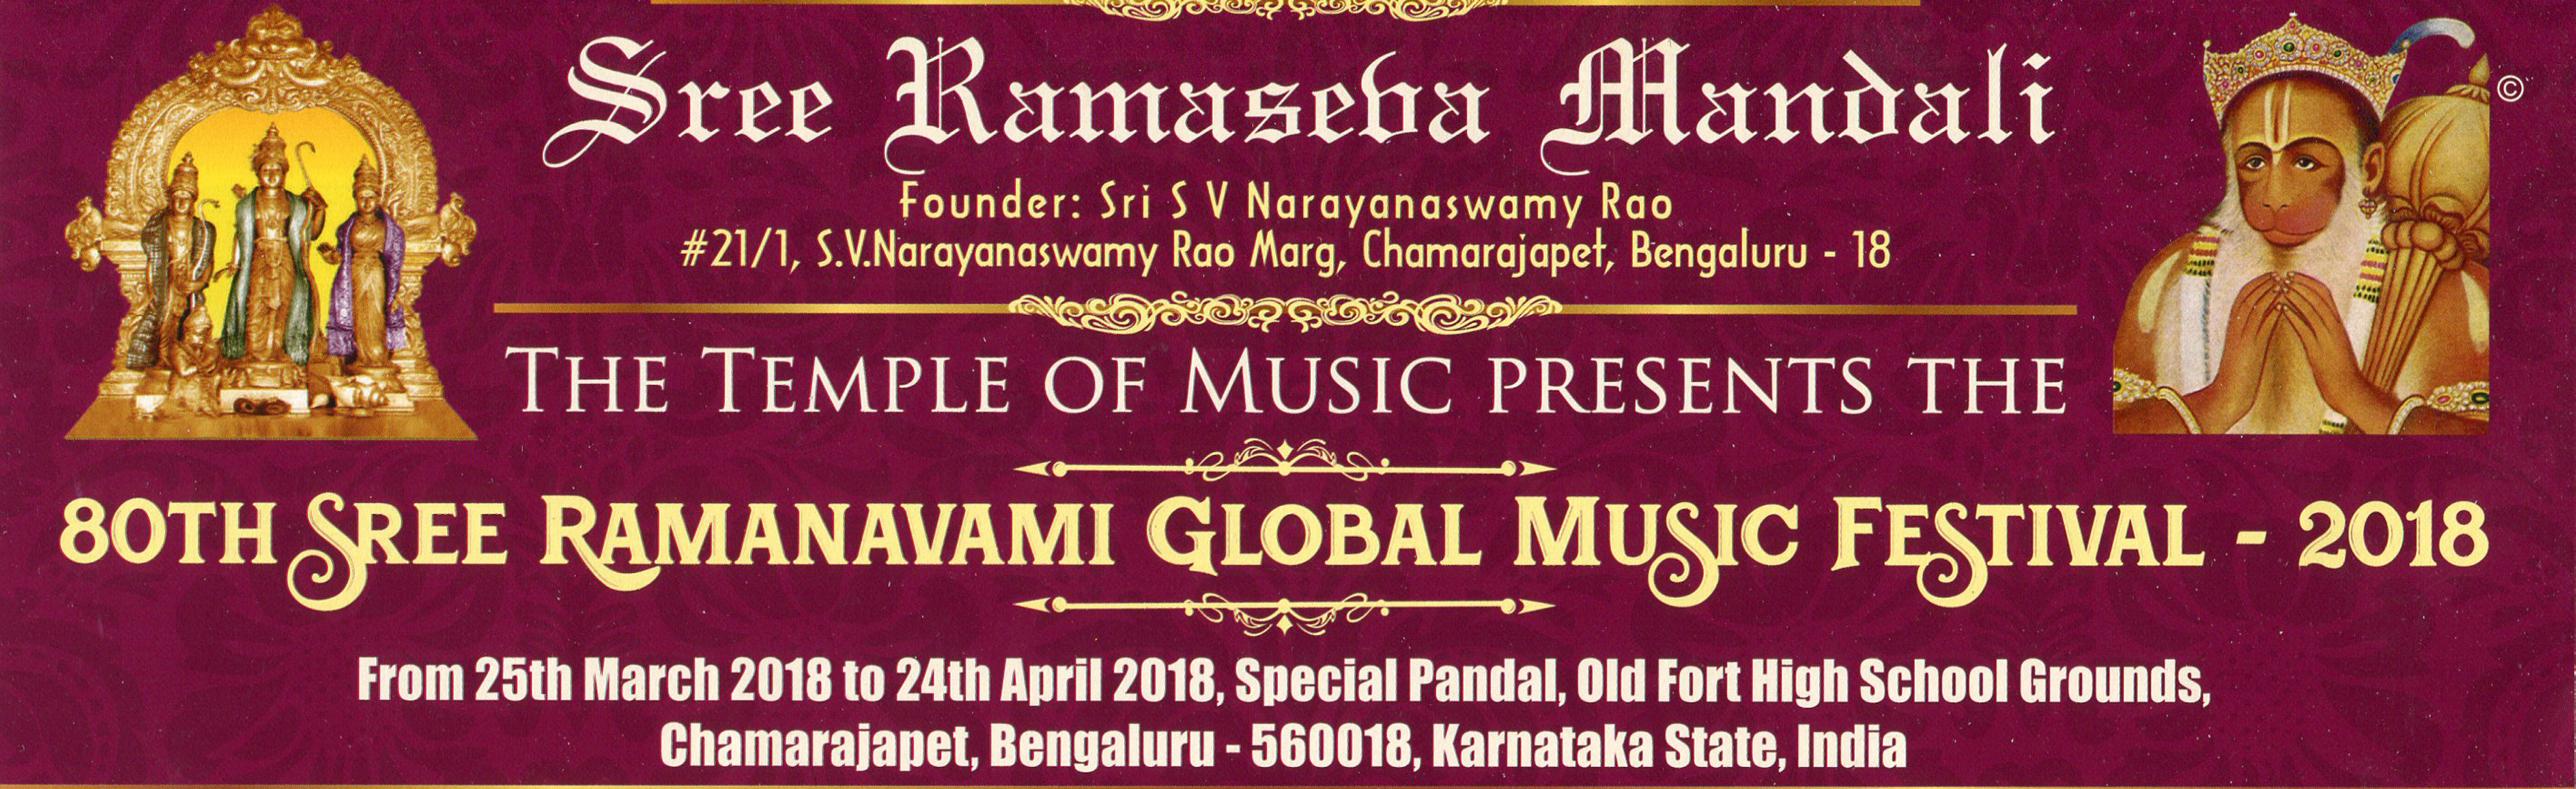 80TH SREE RAMANAVAMI GLOBAL MUSIC FESTIVAL